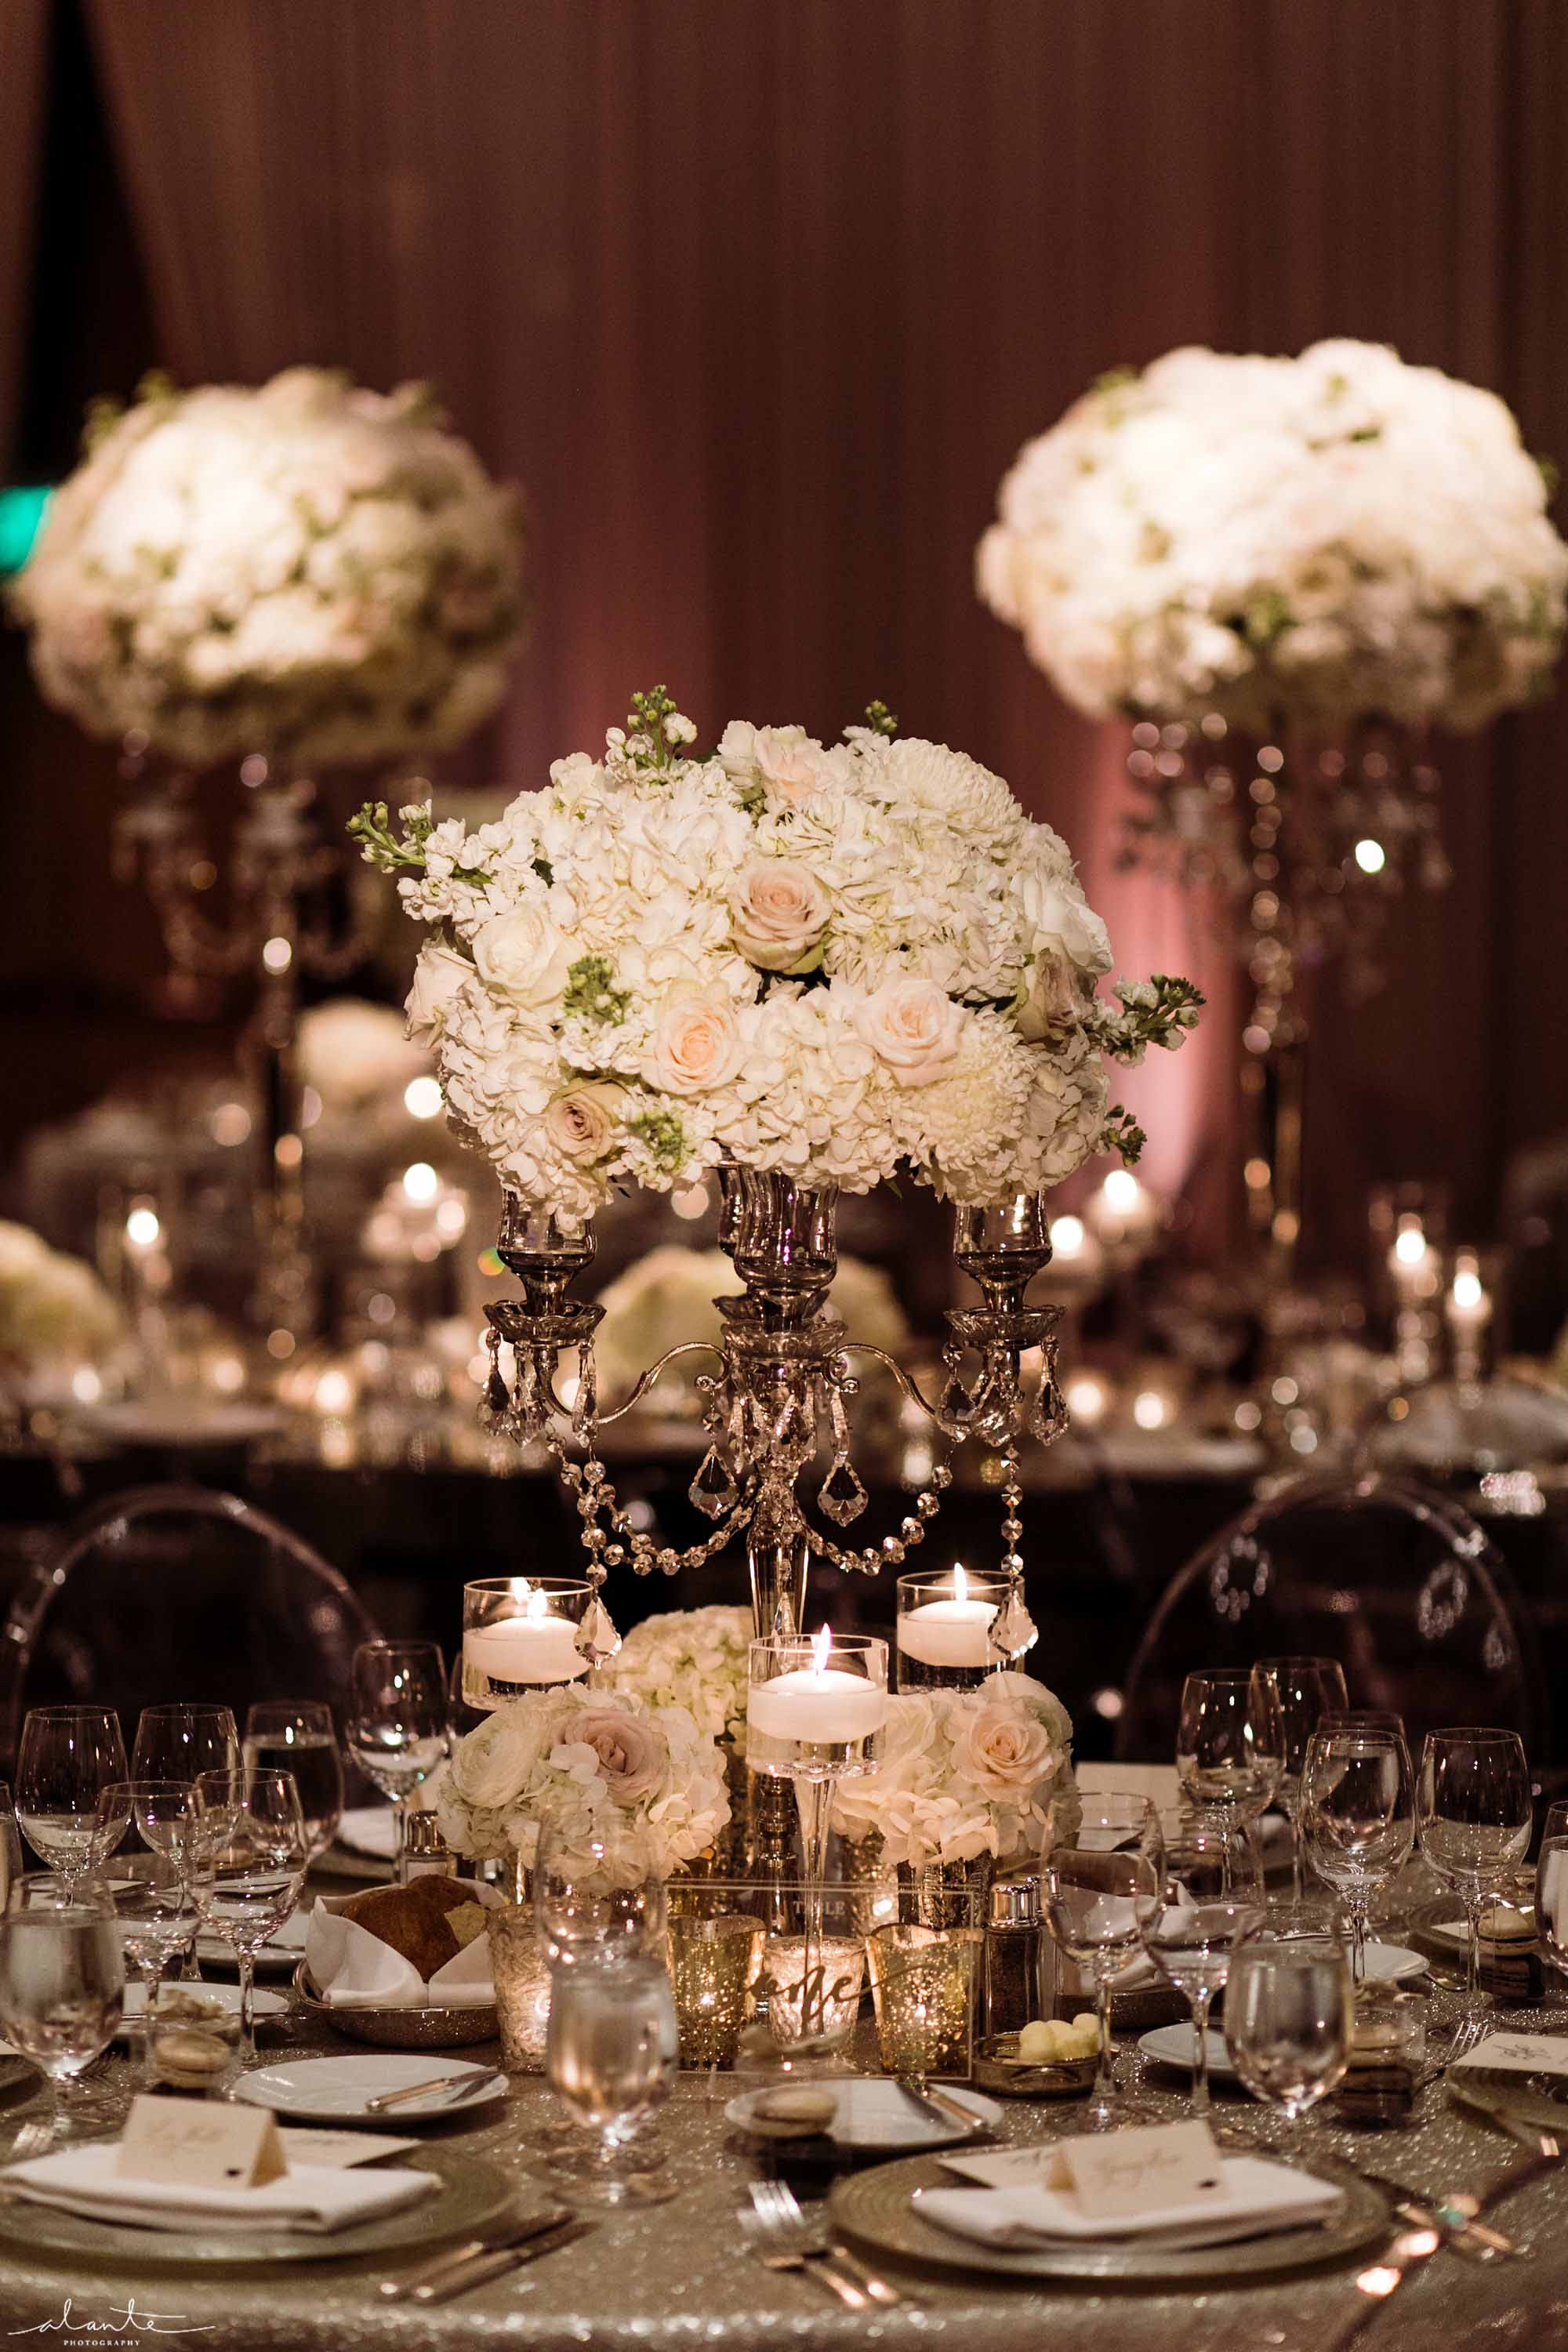 Elevated white floral centerpieces with crystal accents - Luxury Winter Wedding at the Four Seasons by Flora Nova Design Seattle